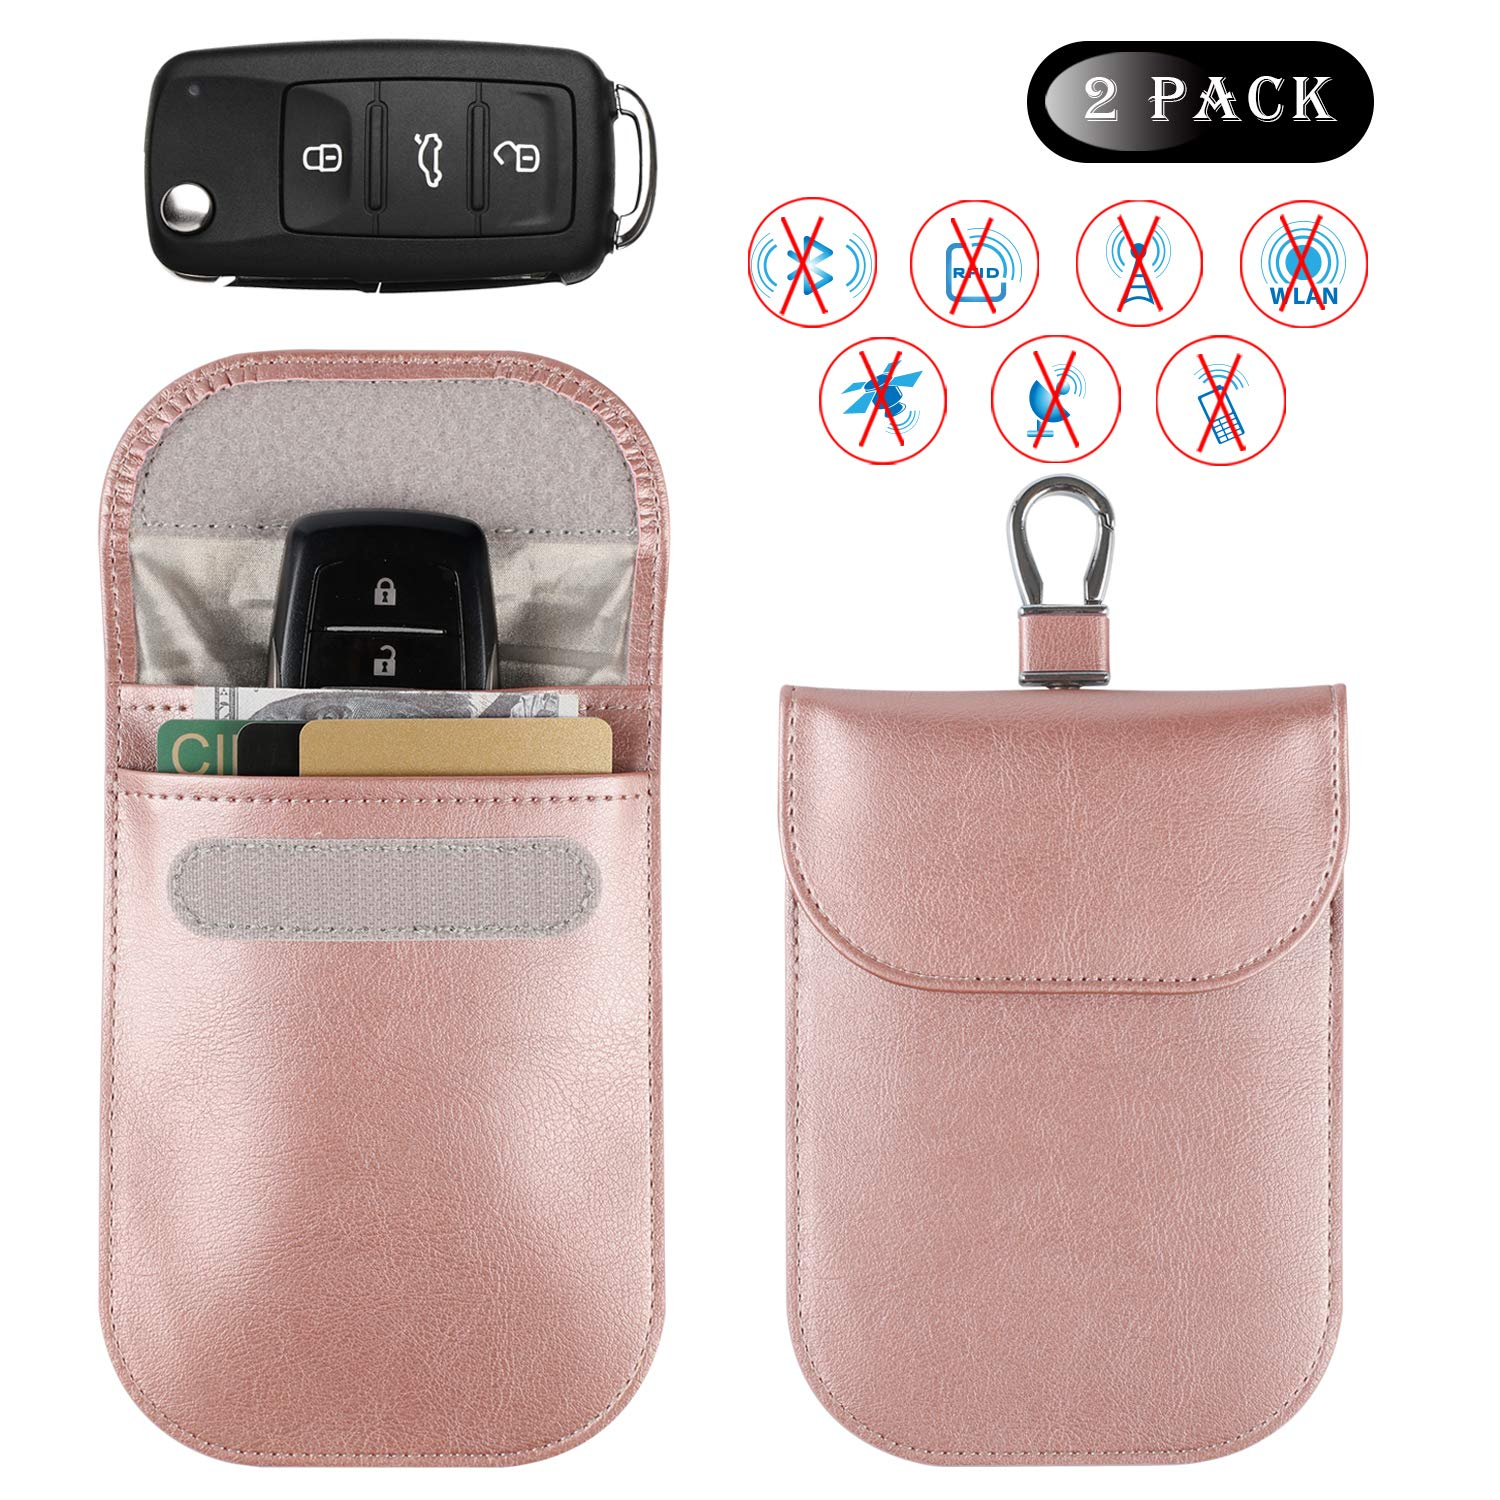 Car Key Signal Blocker Case, Car Key Fob Signal Blocking Bag, Faraday Bag RFID Key Fob Antitheft Lock Devices RFID/WiFi/GSM/LTE/NFC Protector(1Black and 1 Rose Gold) Teskyer